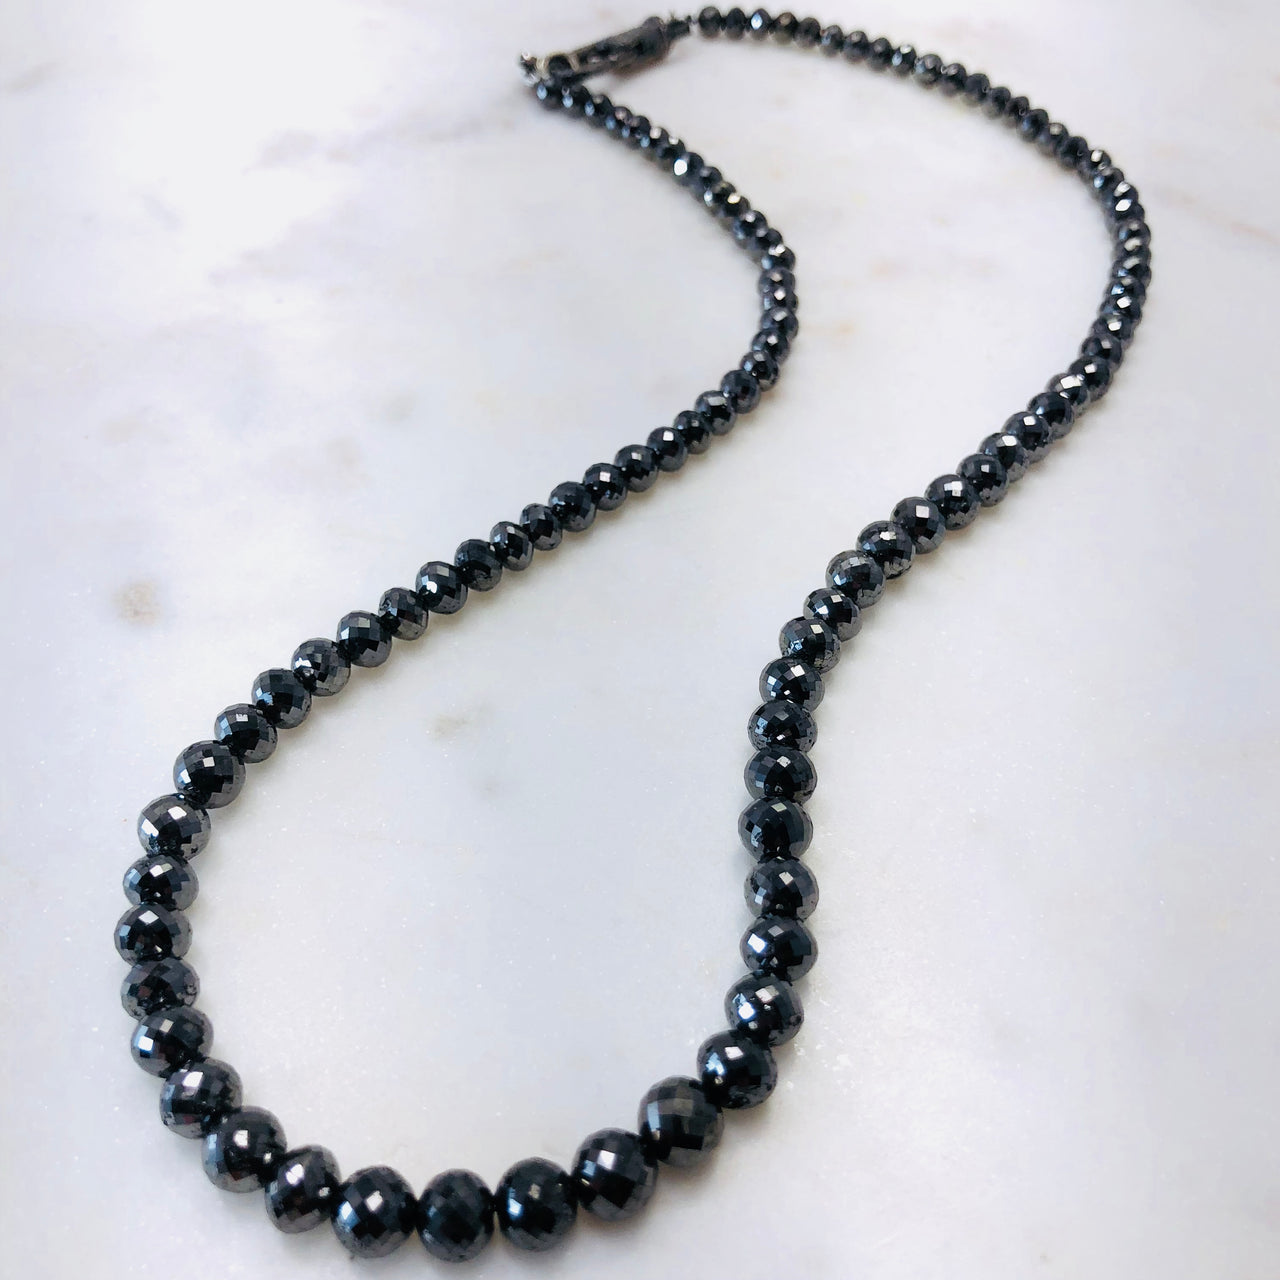 Black Diamond Necklace.